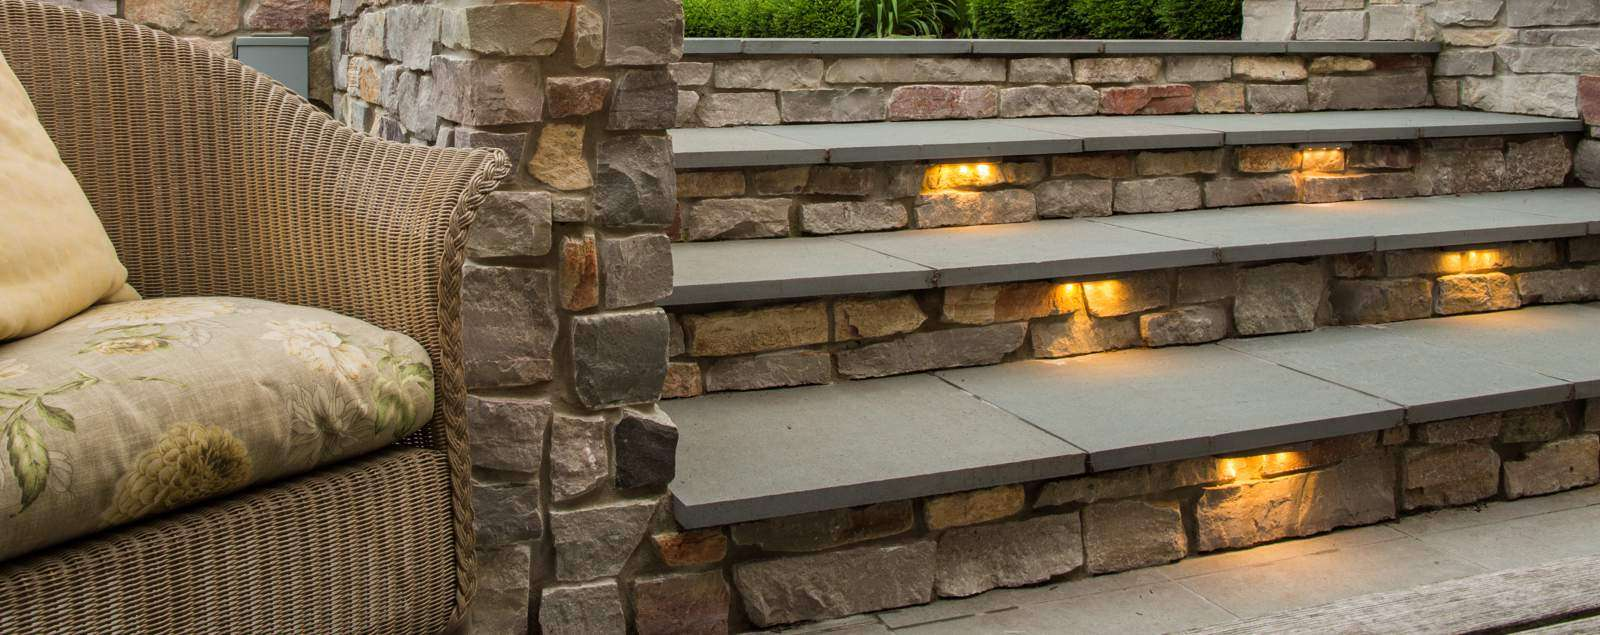 Step Lights and Deck Lights for Outdoor Exterior Locations